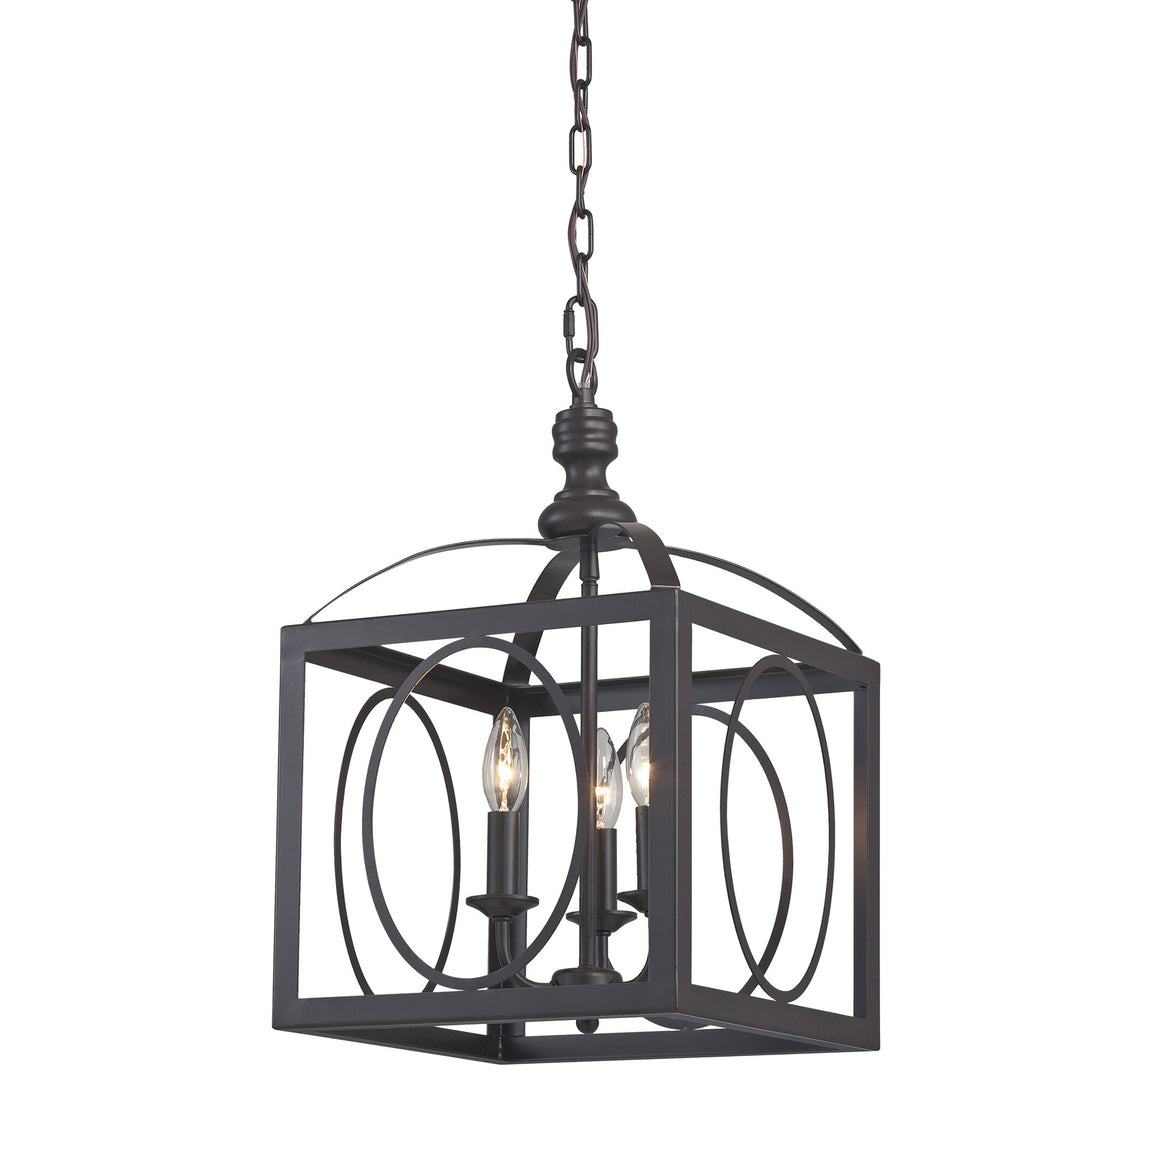 Ailsa-Ringed 3 Light Cluster Lantern by Sterling